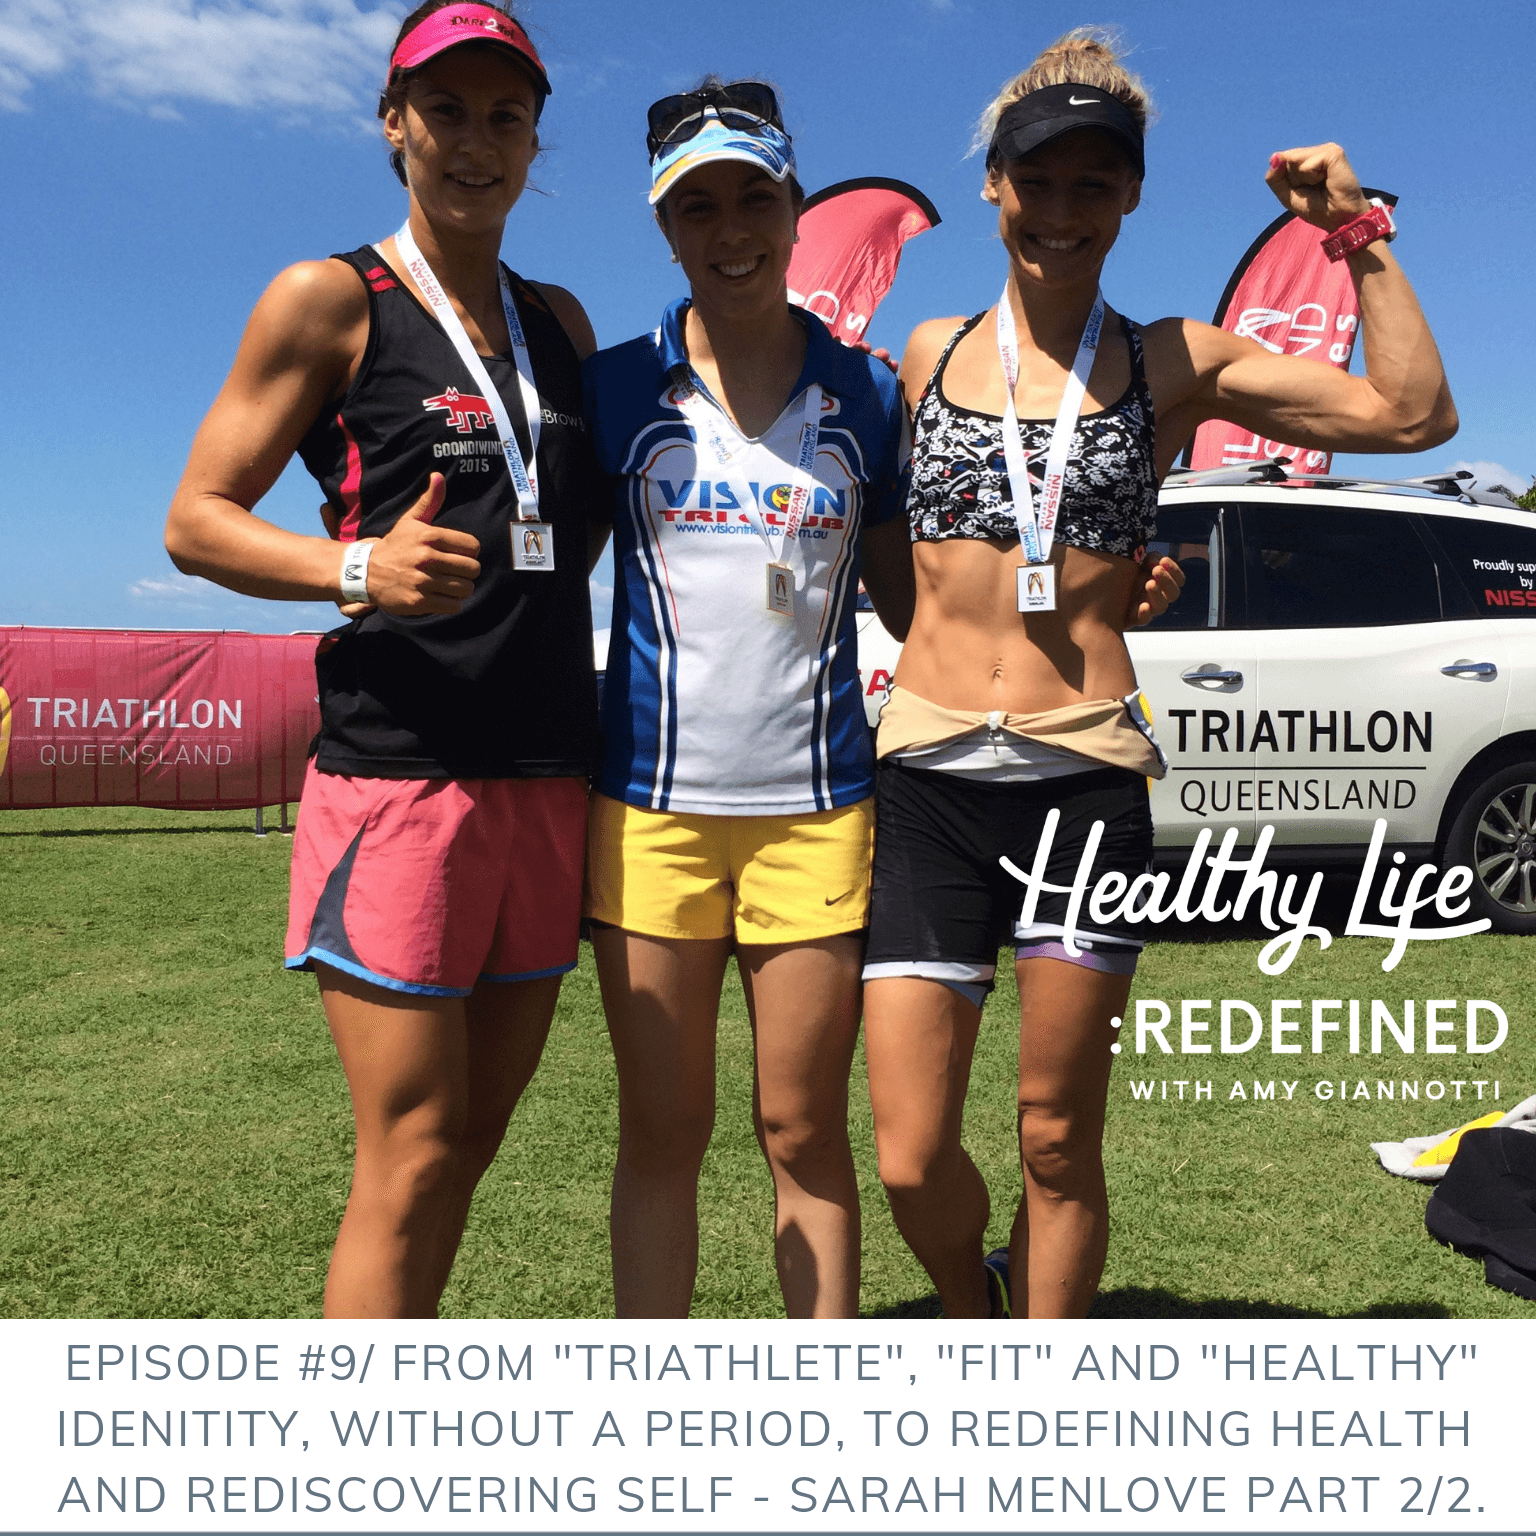 """Podcast Episode 9: From """"Triathlete"""", """"Fit"""" And """"Healthy"""" Identity, Without A Period, To Redefining Health and Rediscovering Self – Sarah Menlove, Part 2 of 2."""